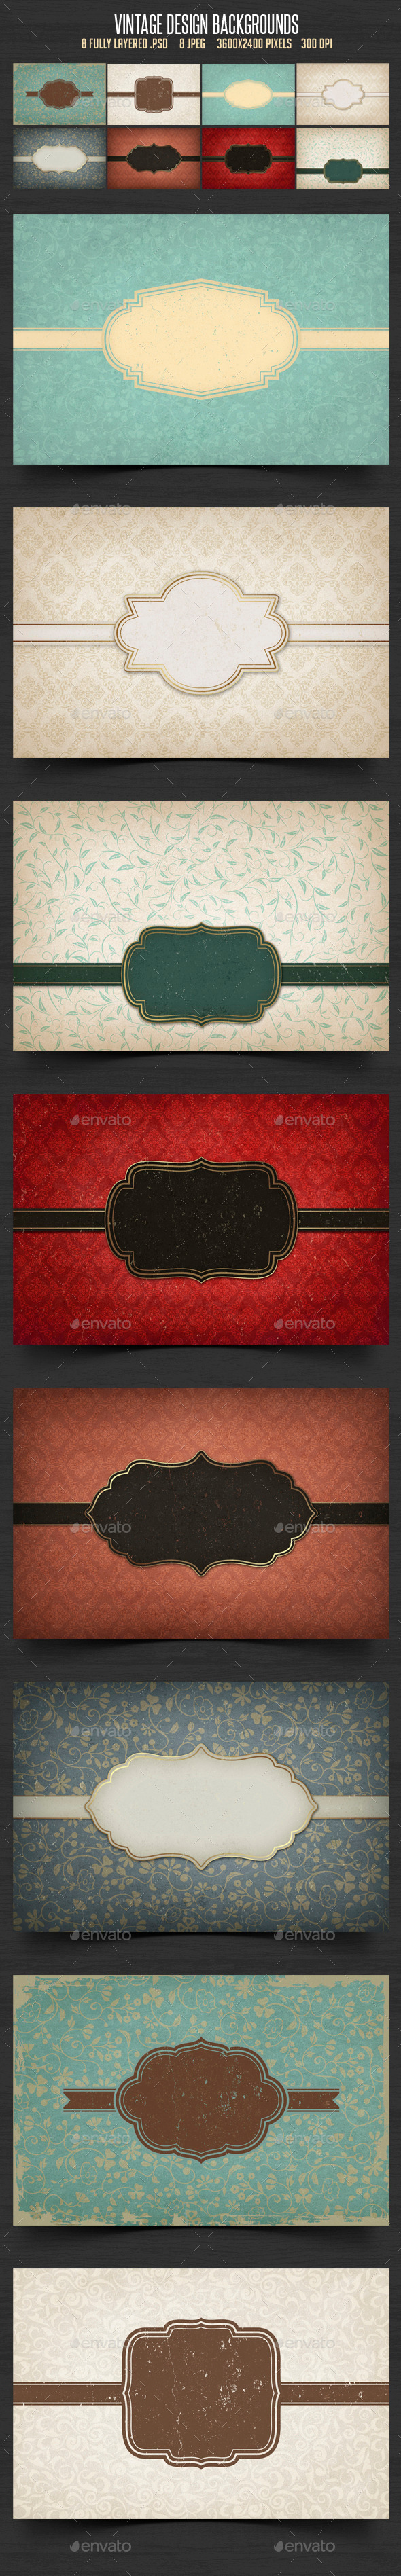 Vintage Design Backgrounds - Backgrounds Graphics